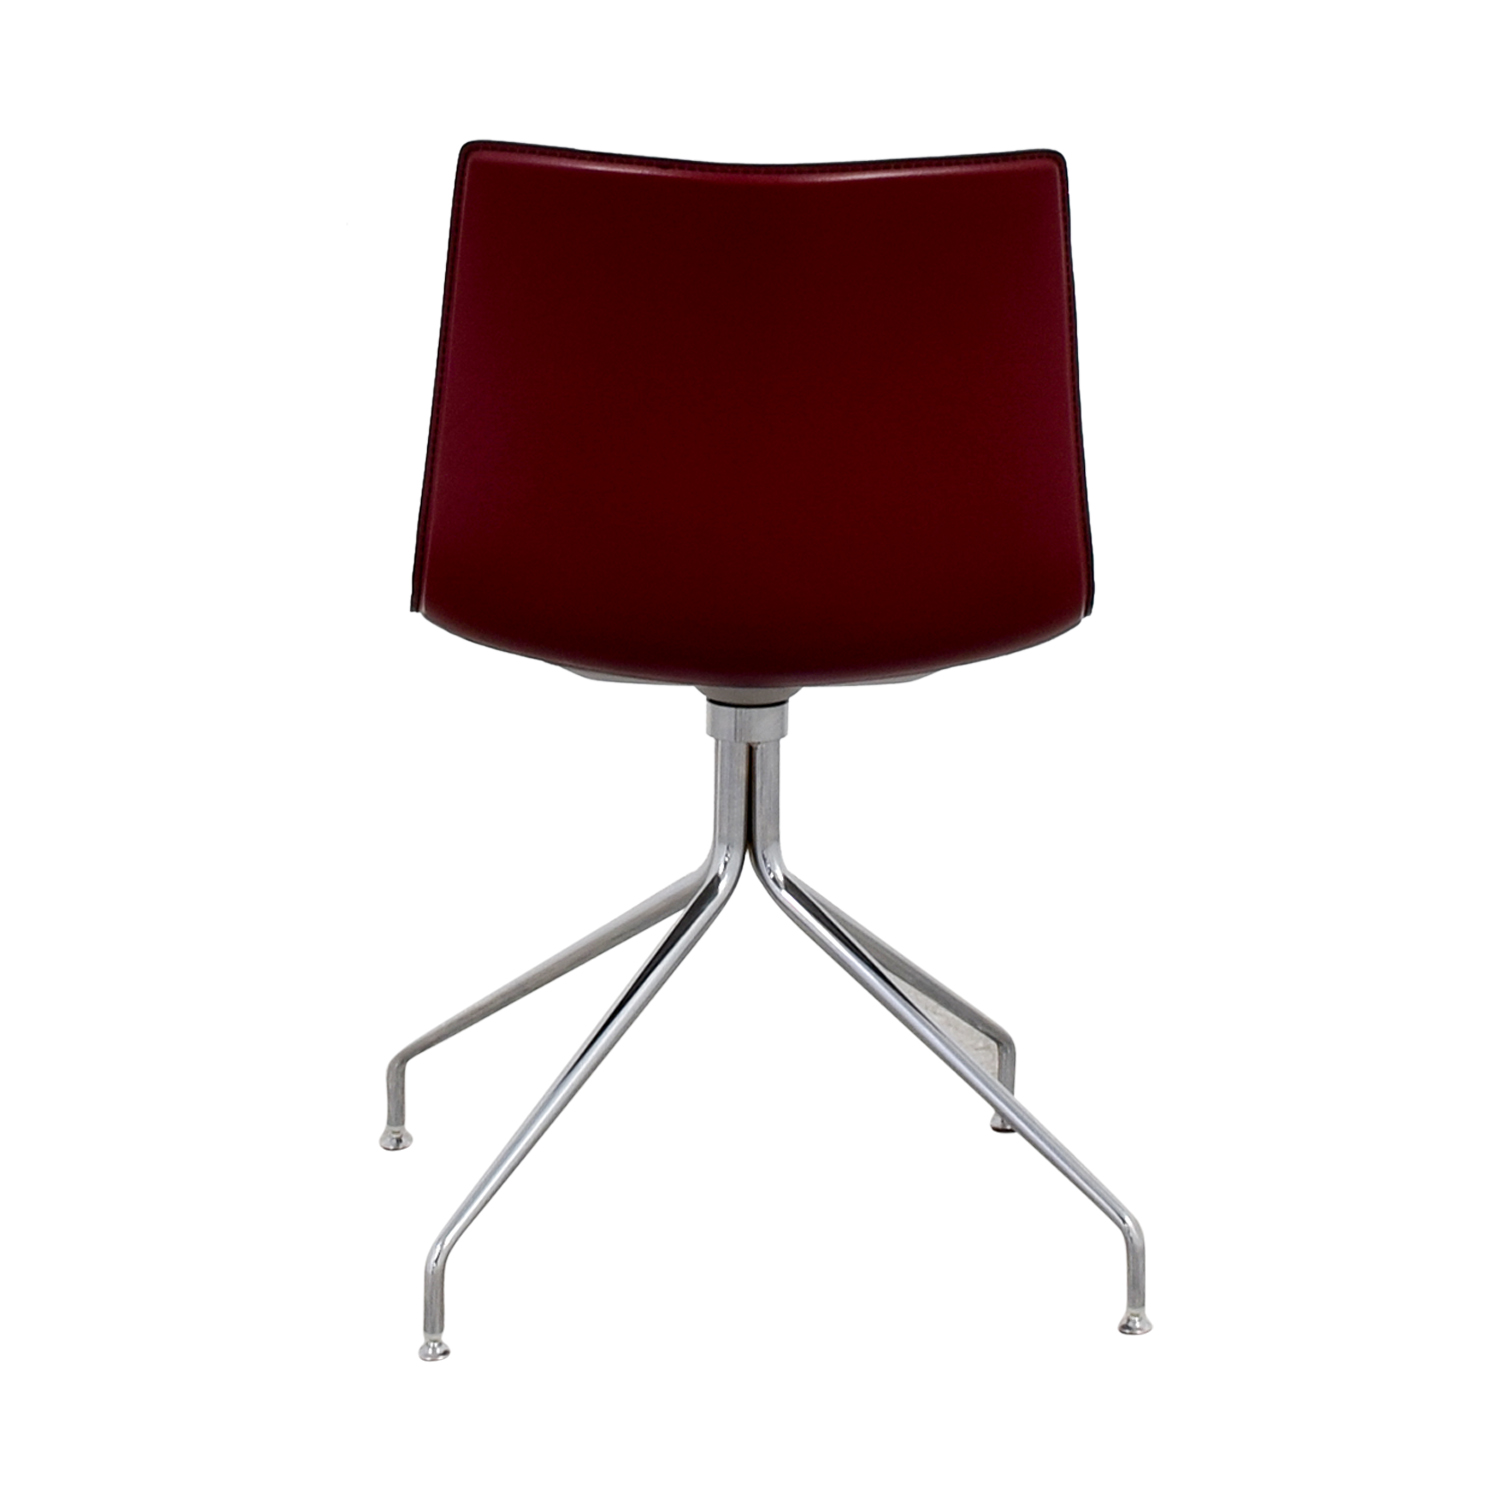 Arper Catifa 53 Burgundy Leather Armchair Arper